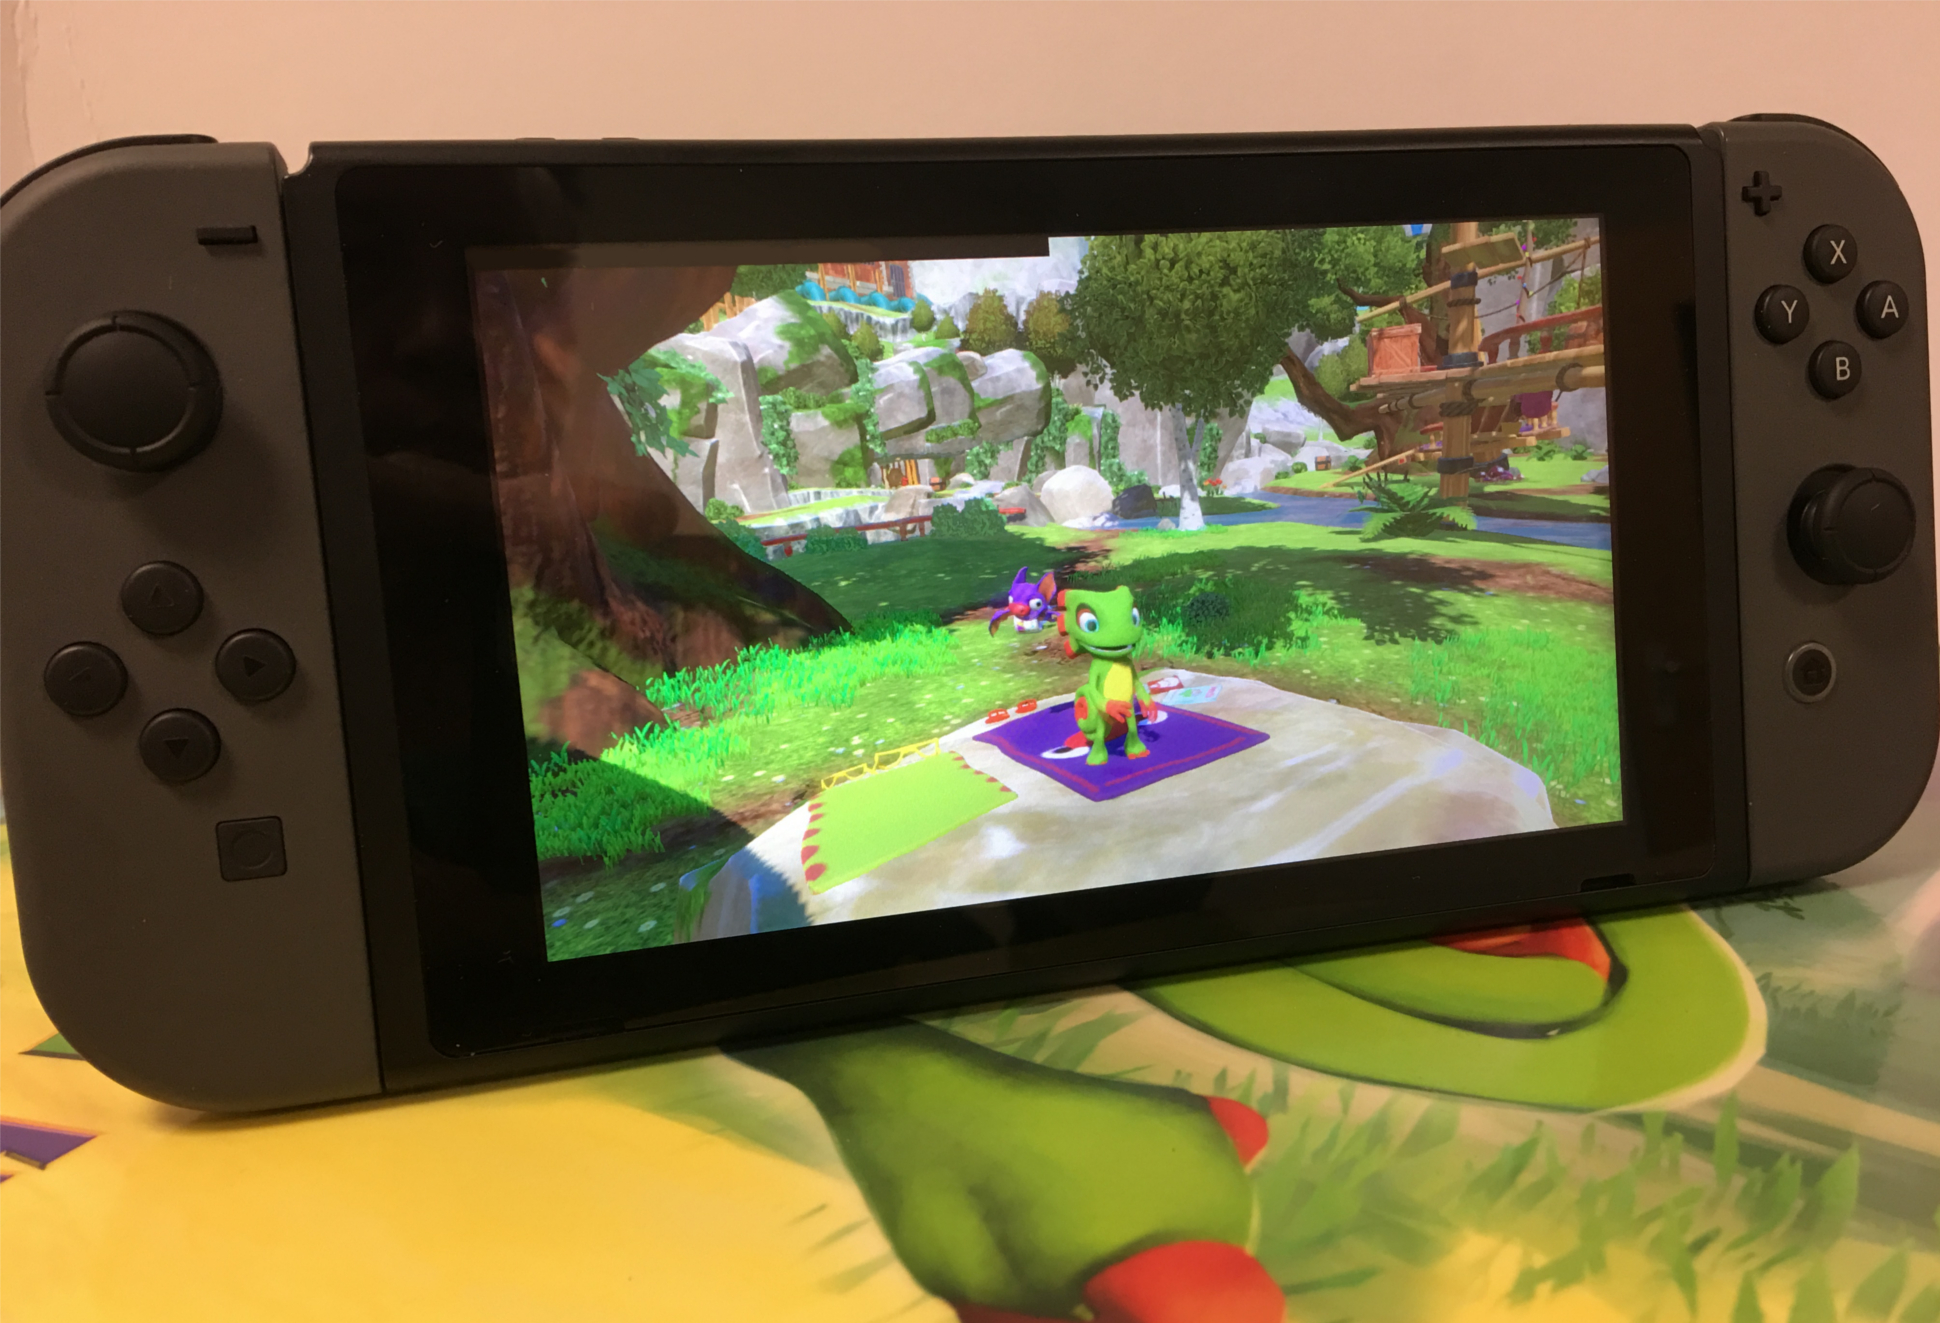 yooka-laylee-patch-will-tone-down-gibberish-voices-149684642008.jpg